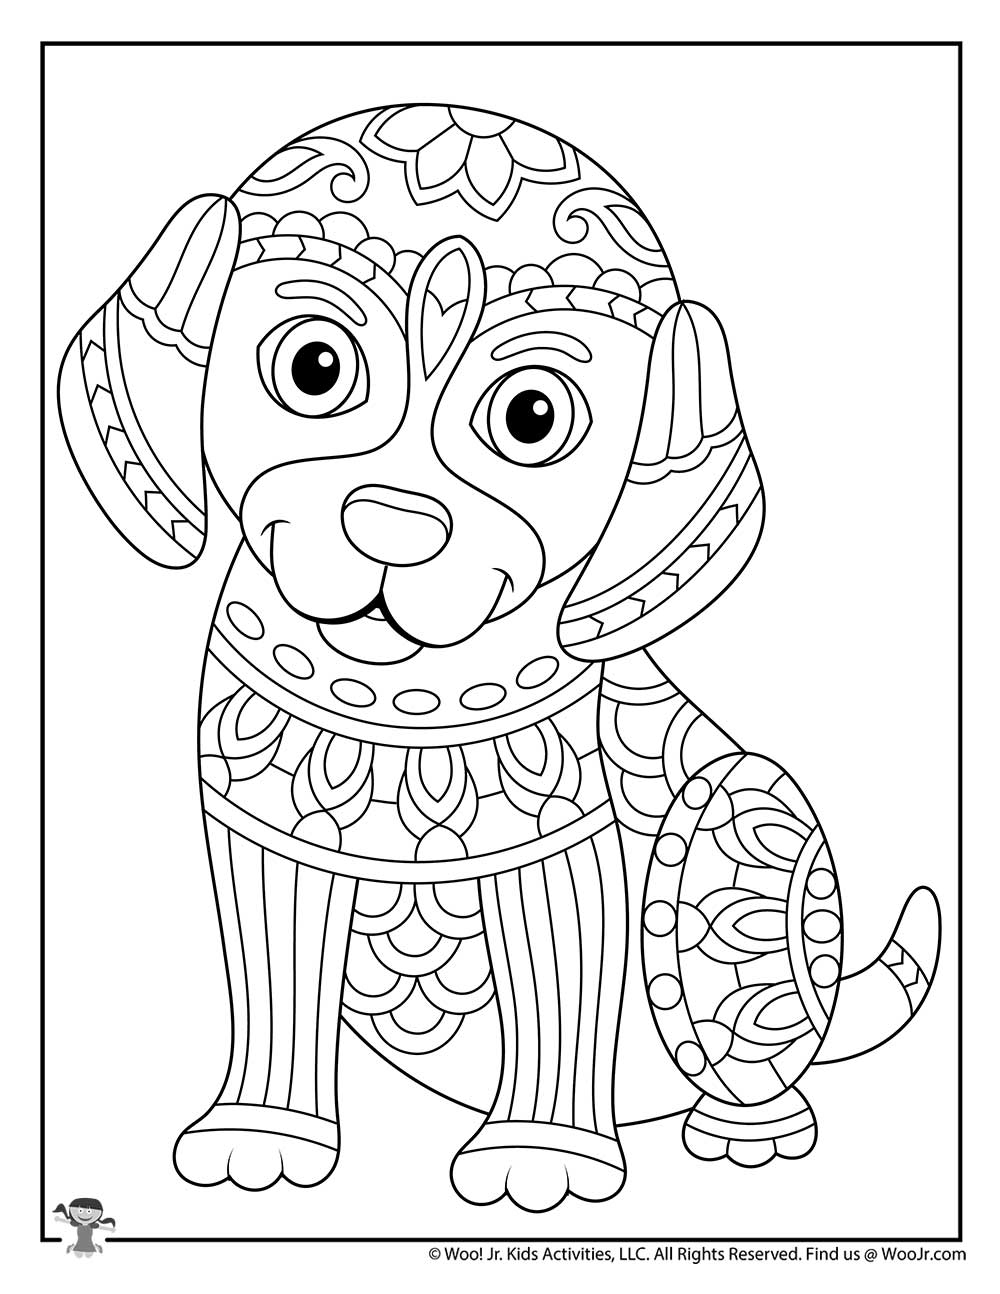 Puppy Dog Animal Adult Coloring Page | Woo! Jr. Kids ...